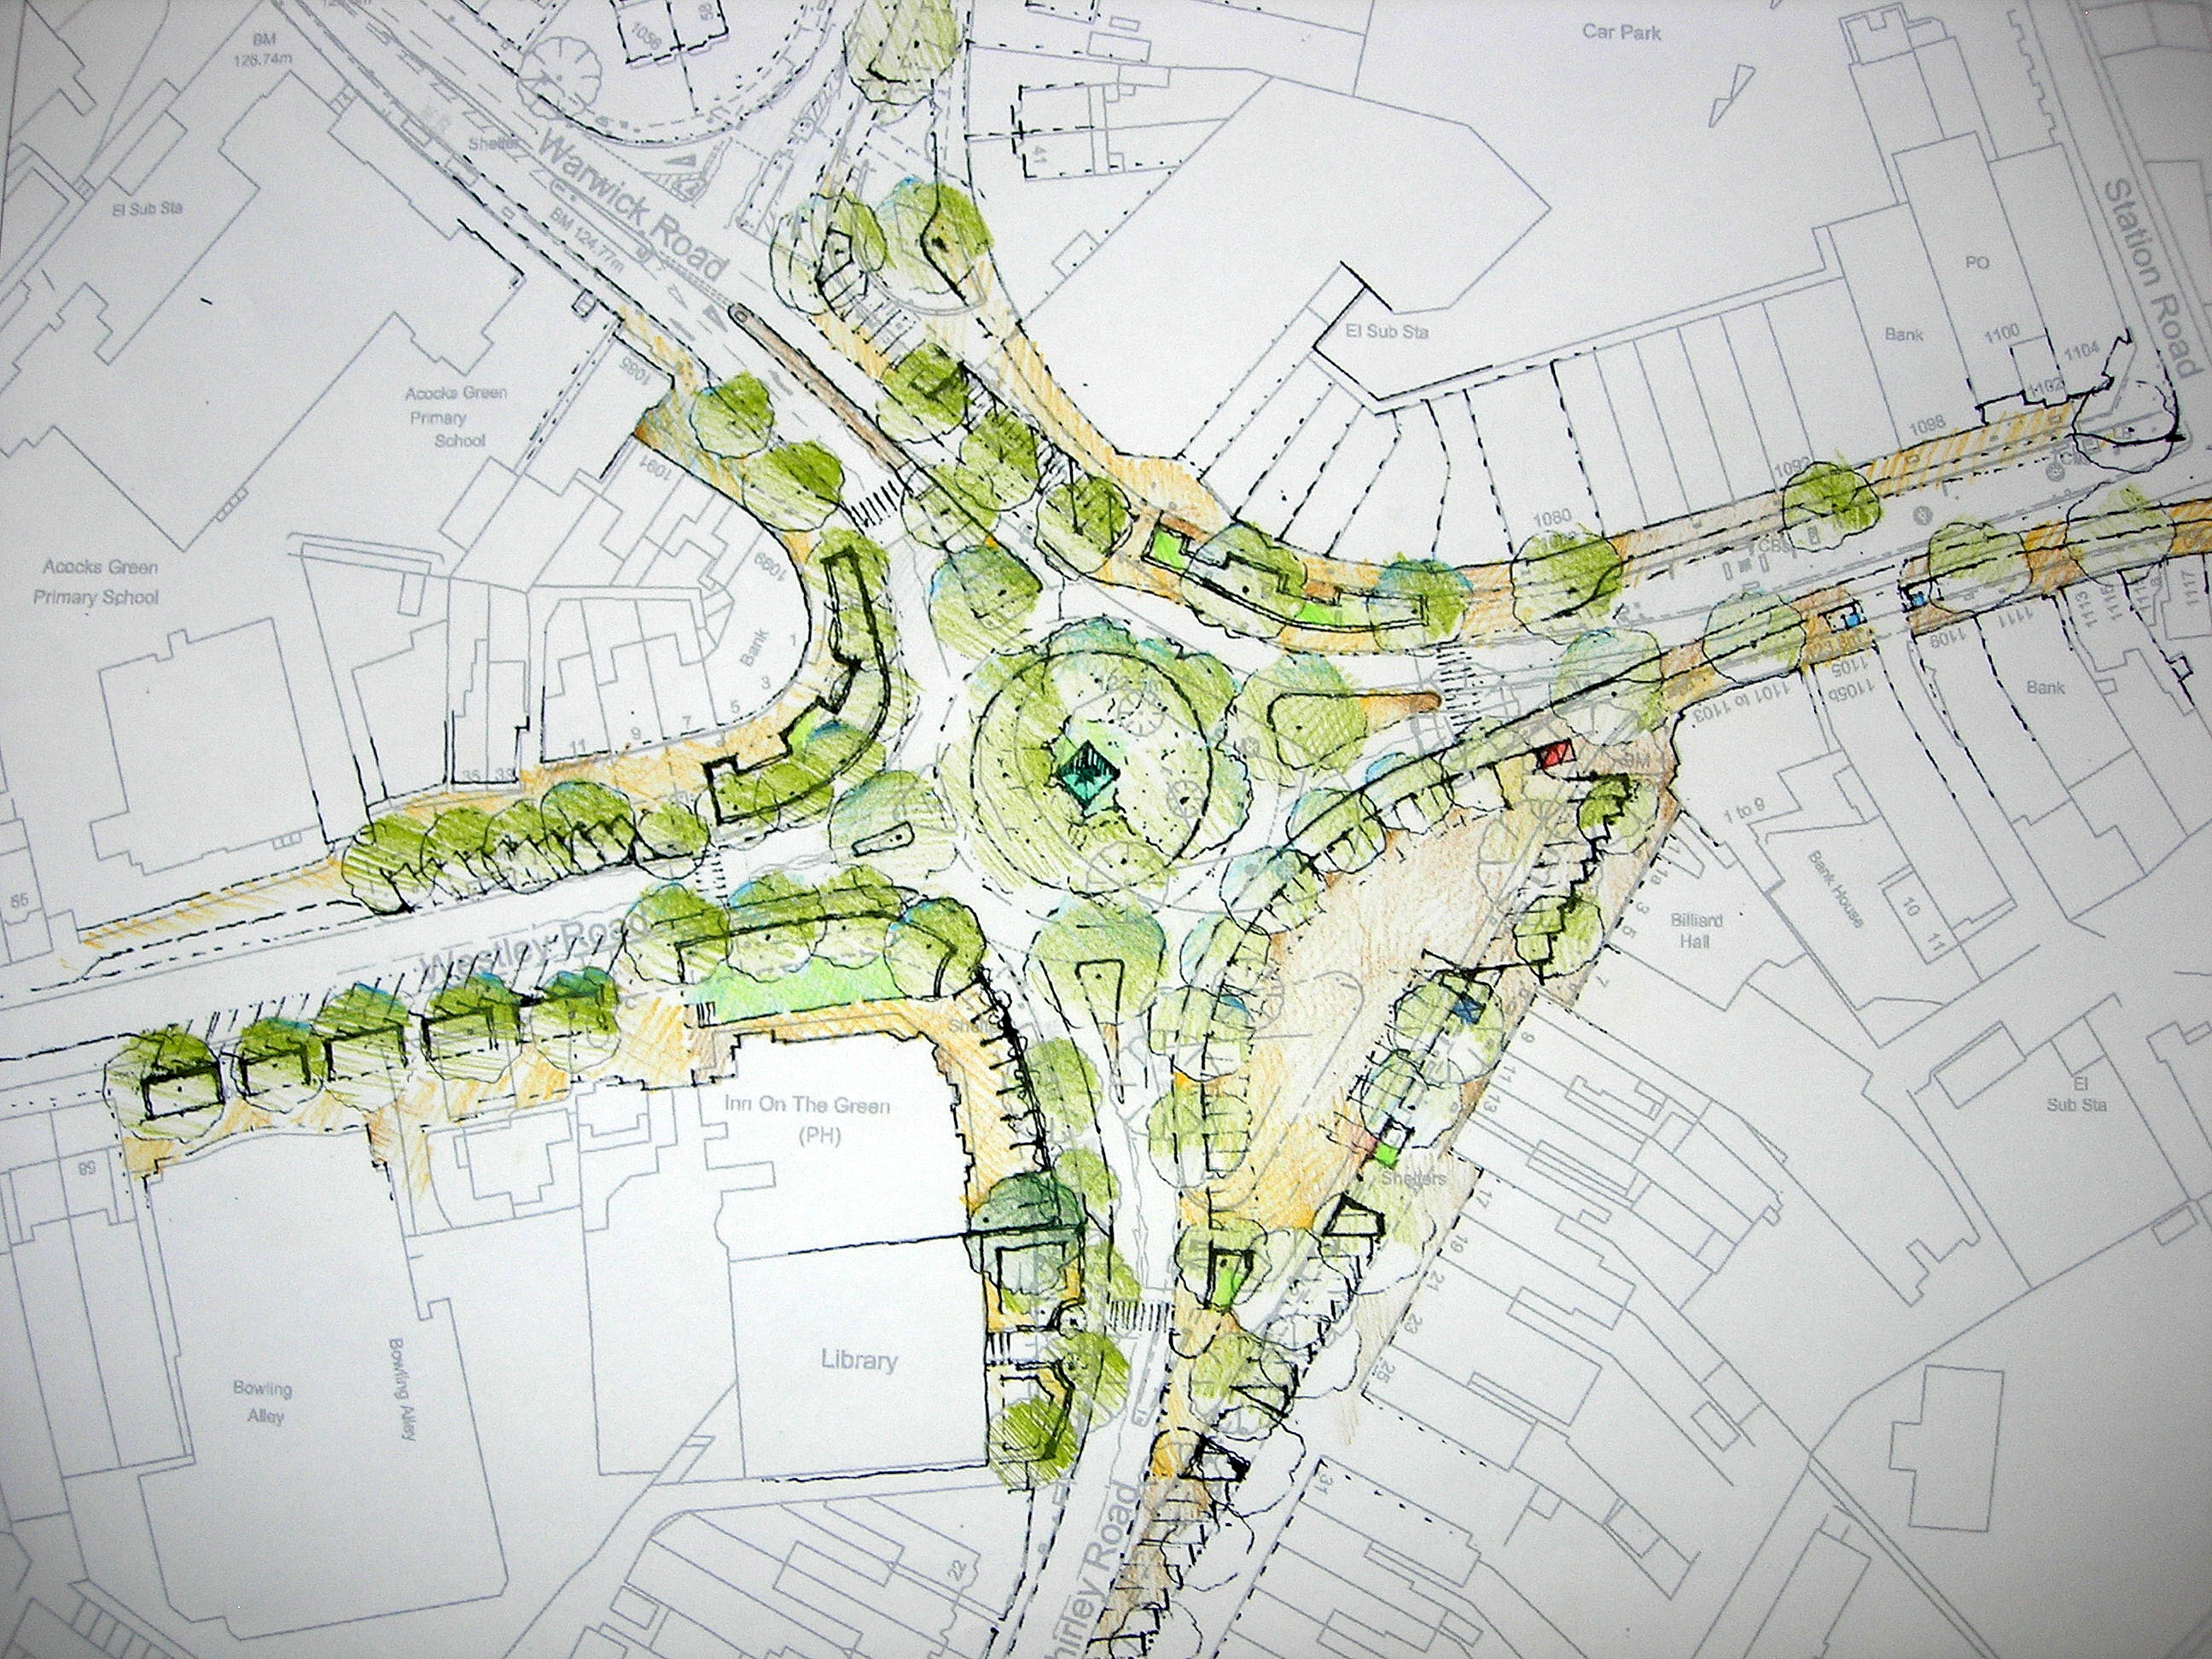 Birmingham landscape planning practice plan for acocks Green plans